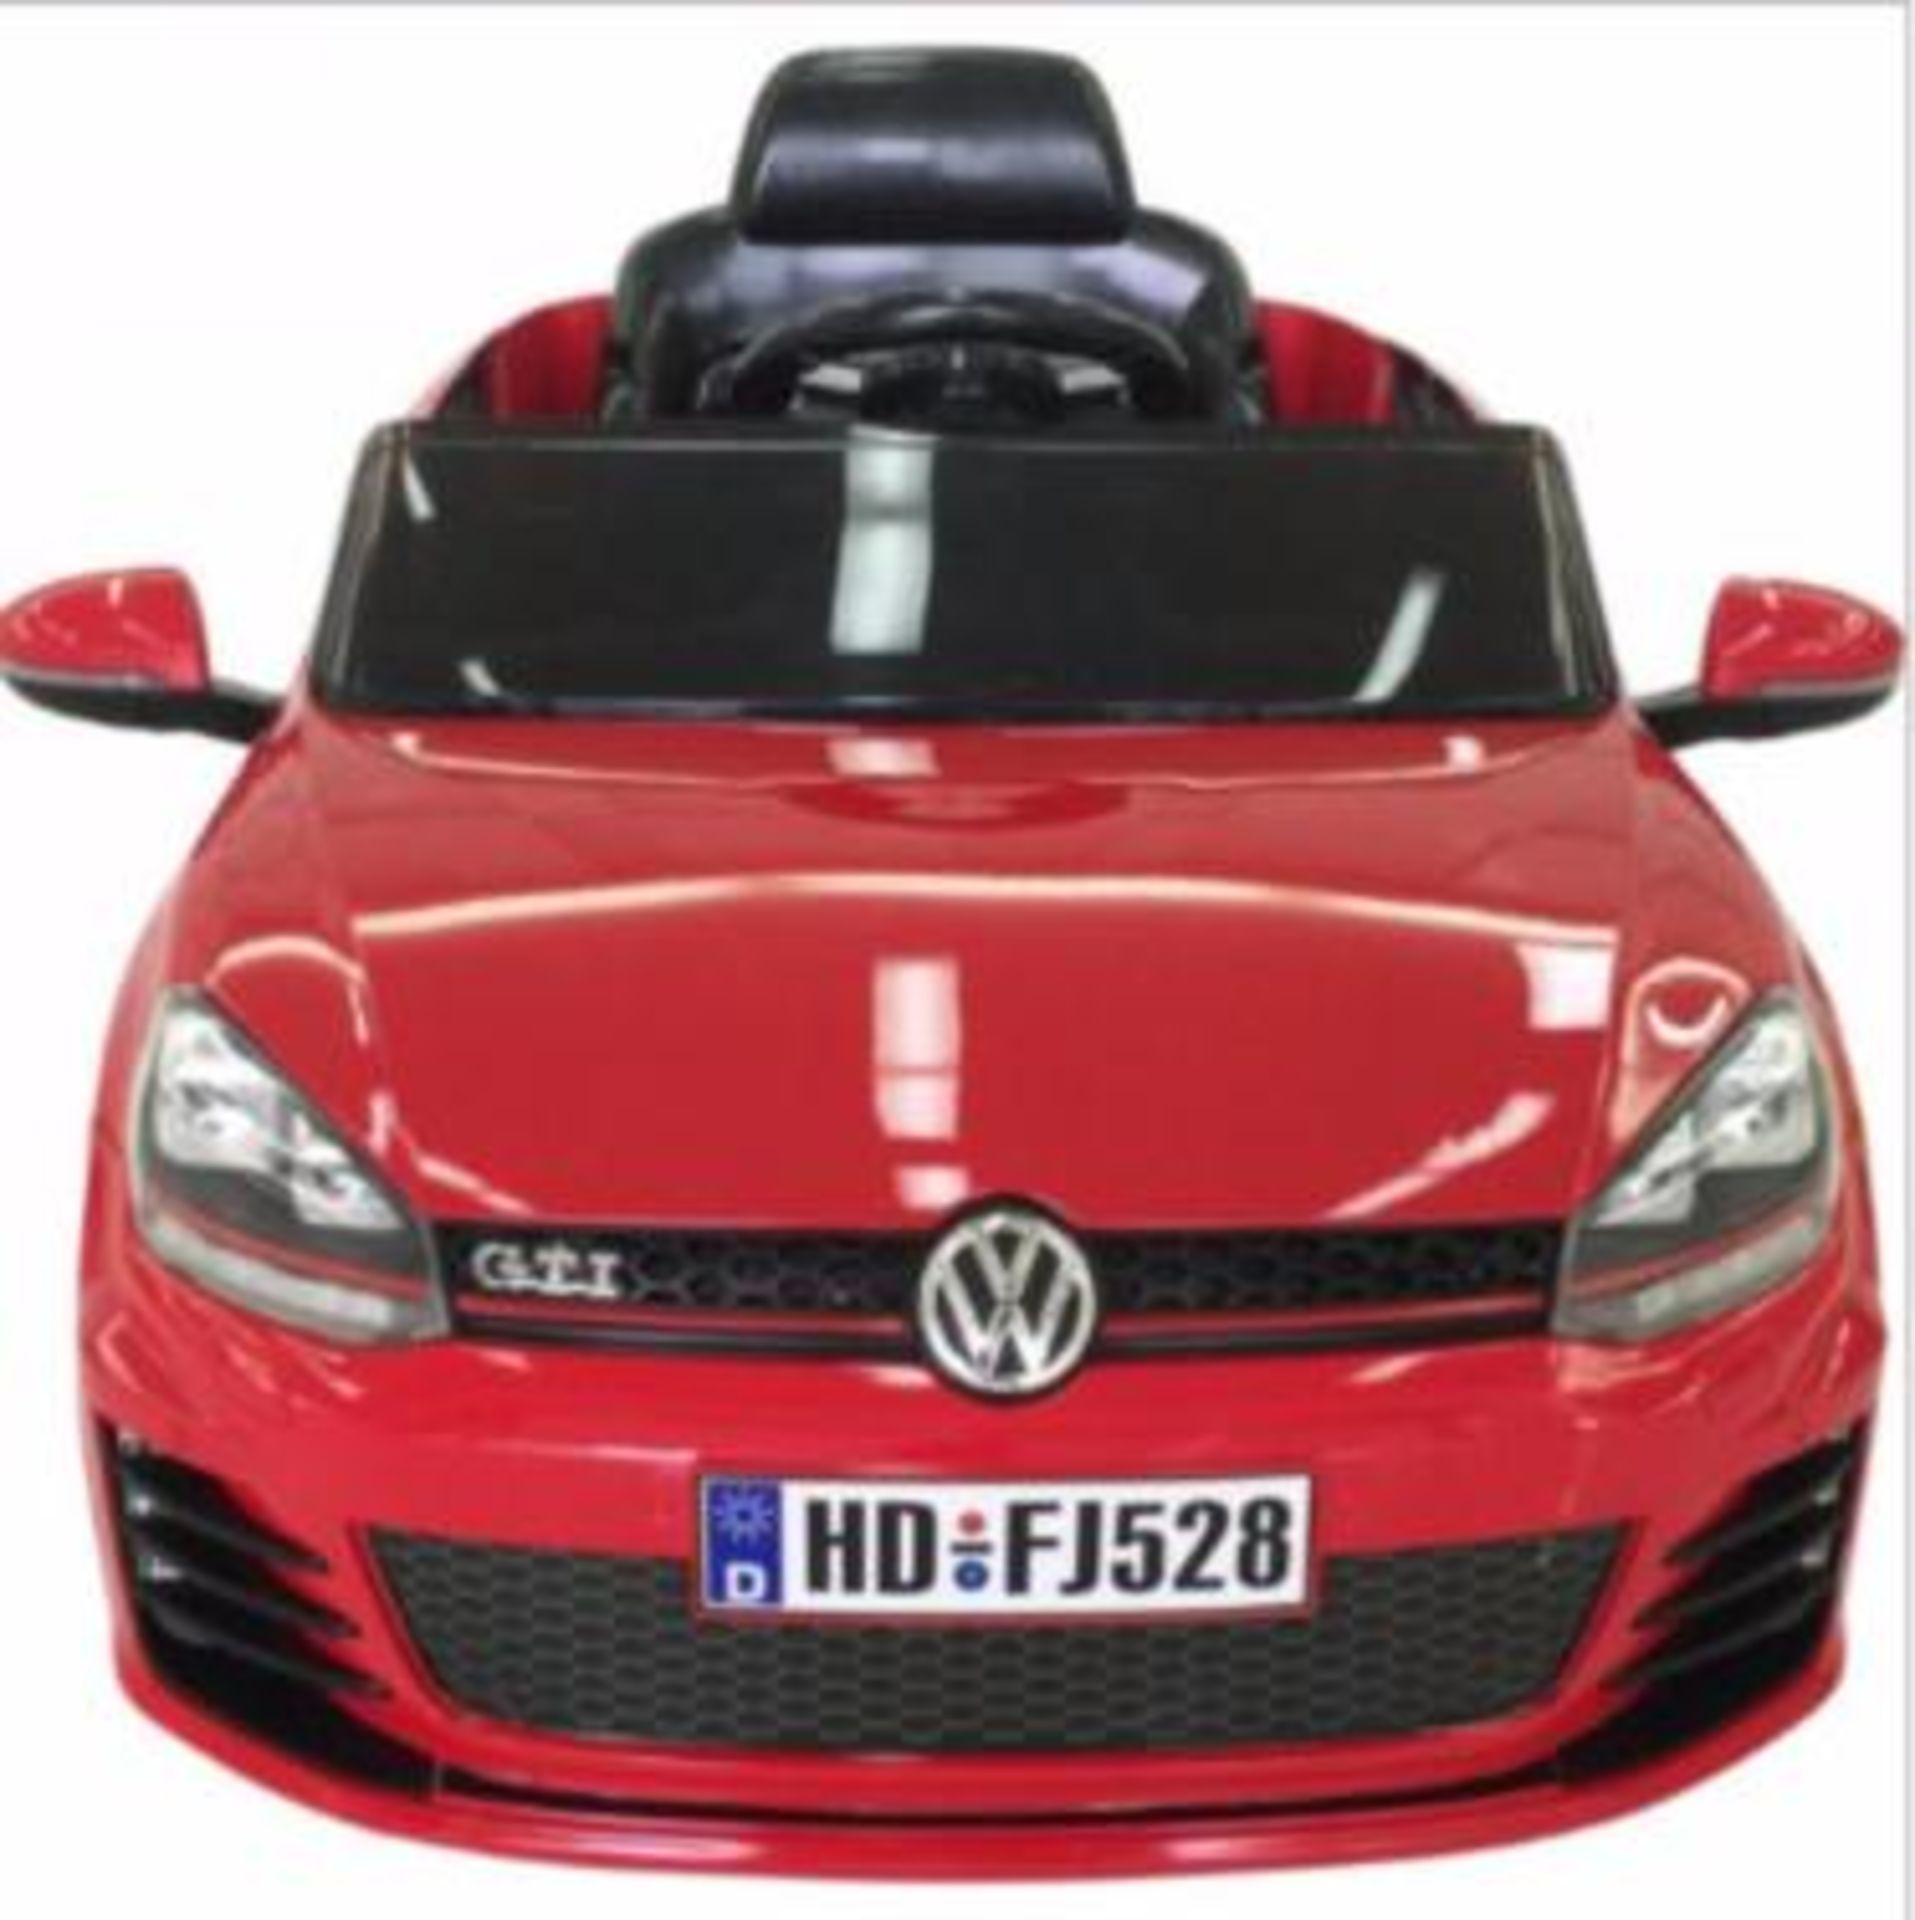 Lot 11614 - V Brand New Ride In Golf GTi VW Licensed 1:4 Scale Design With 2.4G One-2-One Code Remote Control-